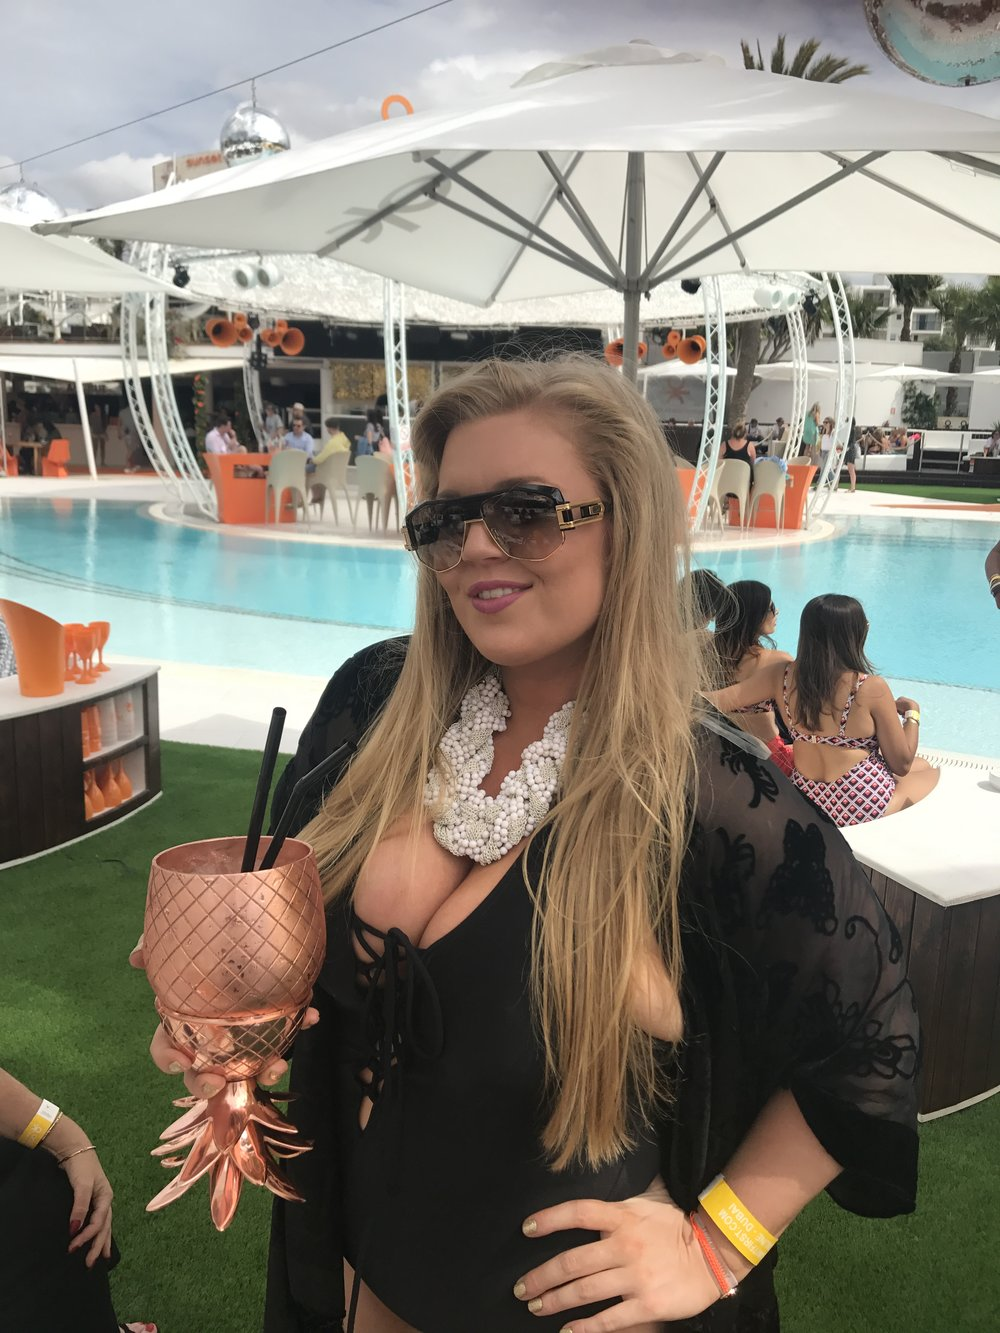 what_to_Wear_in_ibiza_simply_be_swimsuit_for_women_with_curves_boobs_ibiza_evissa_ocean_beach_ibiza_elle_blonde_luxury_lifestyle_blog